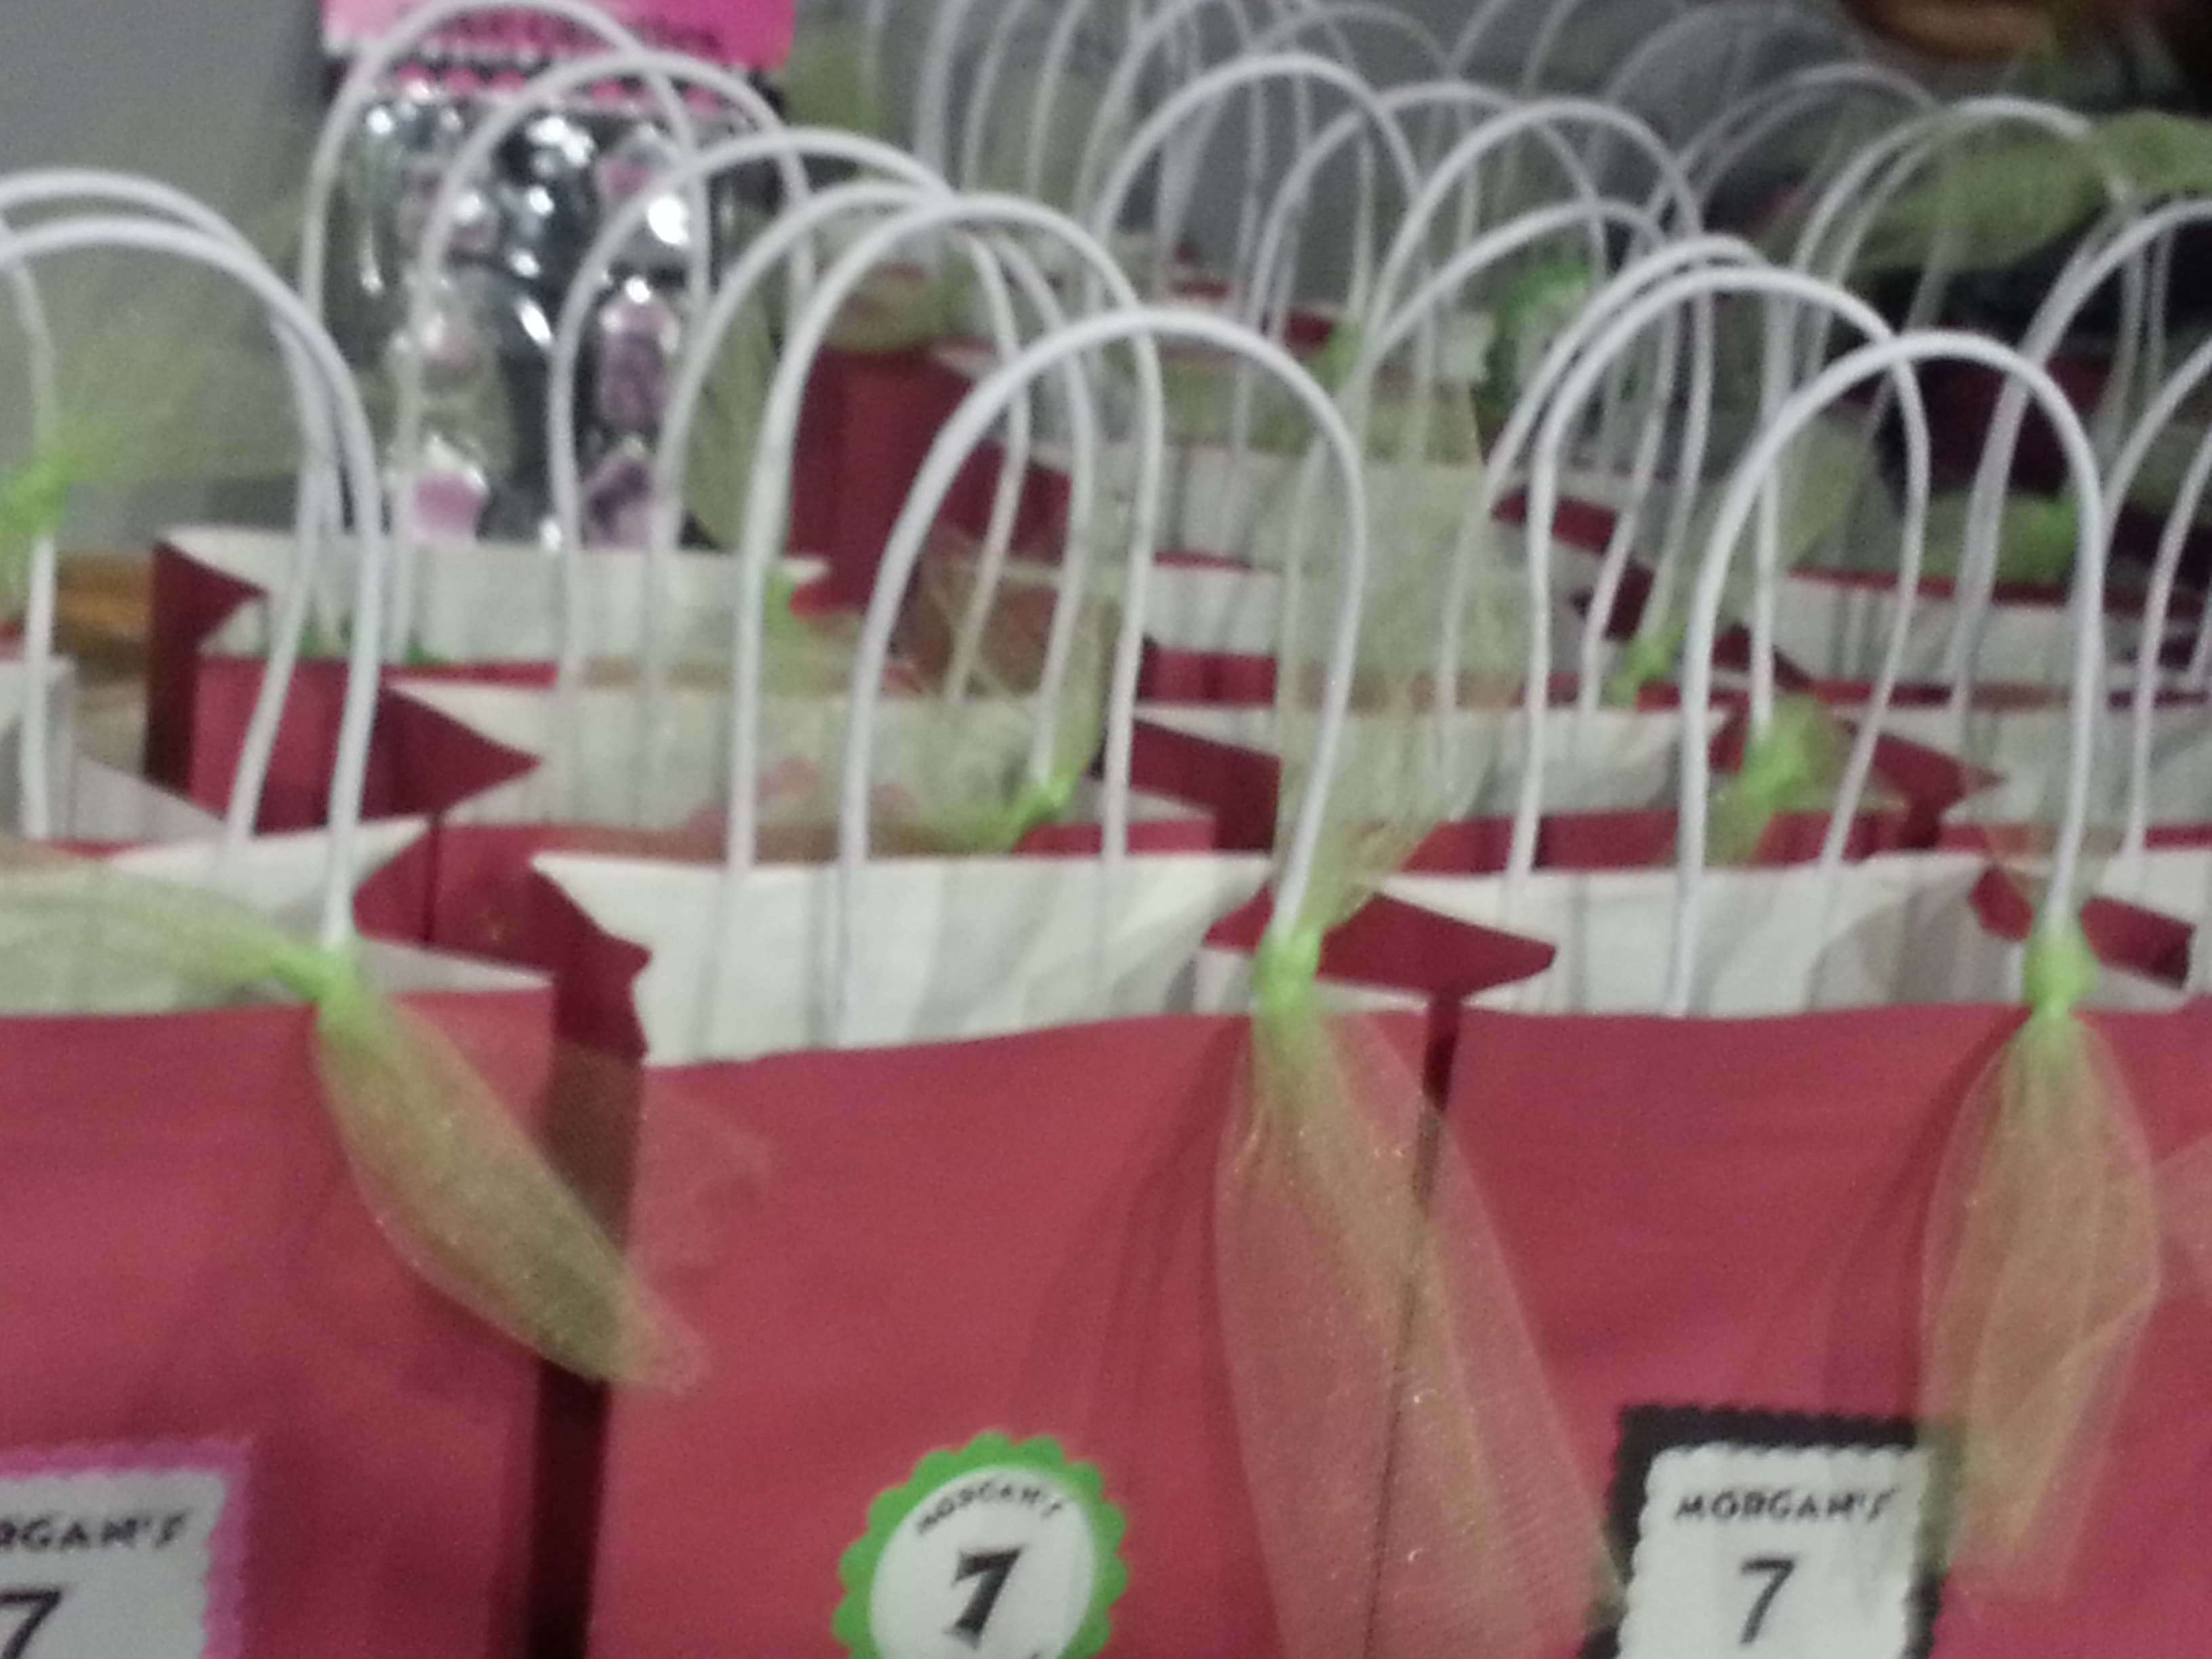 7th birthday bags